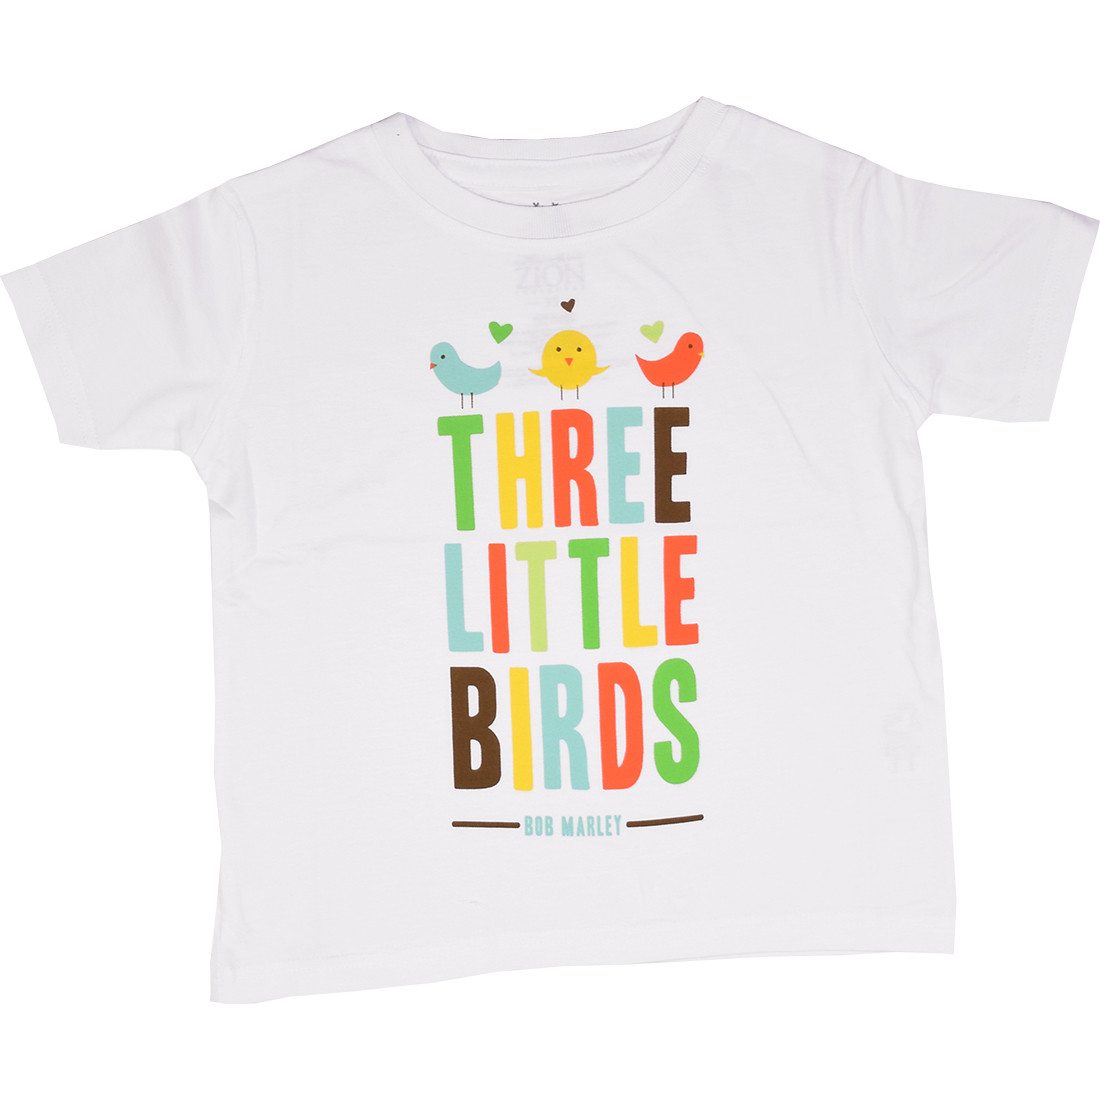 Marley Bird Hearts Toddler White T-Shirt